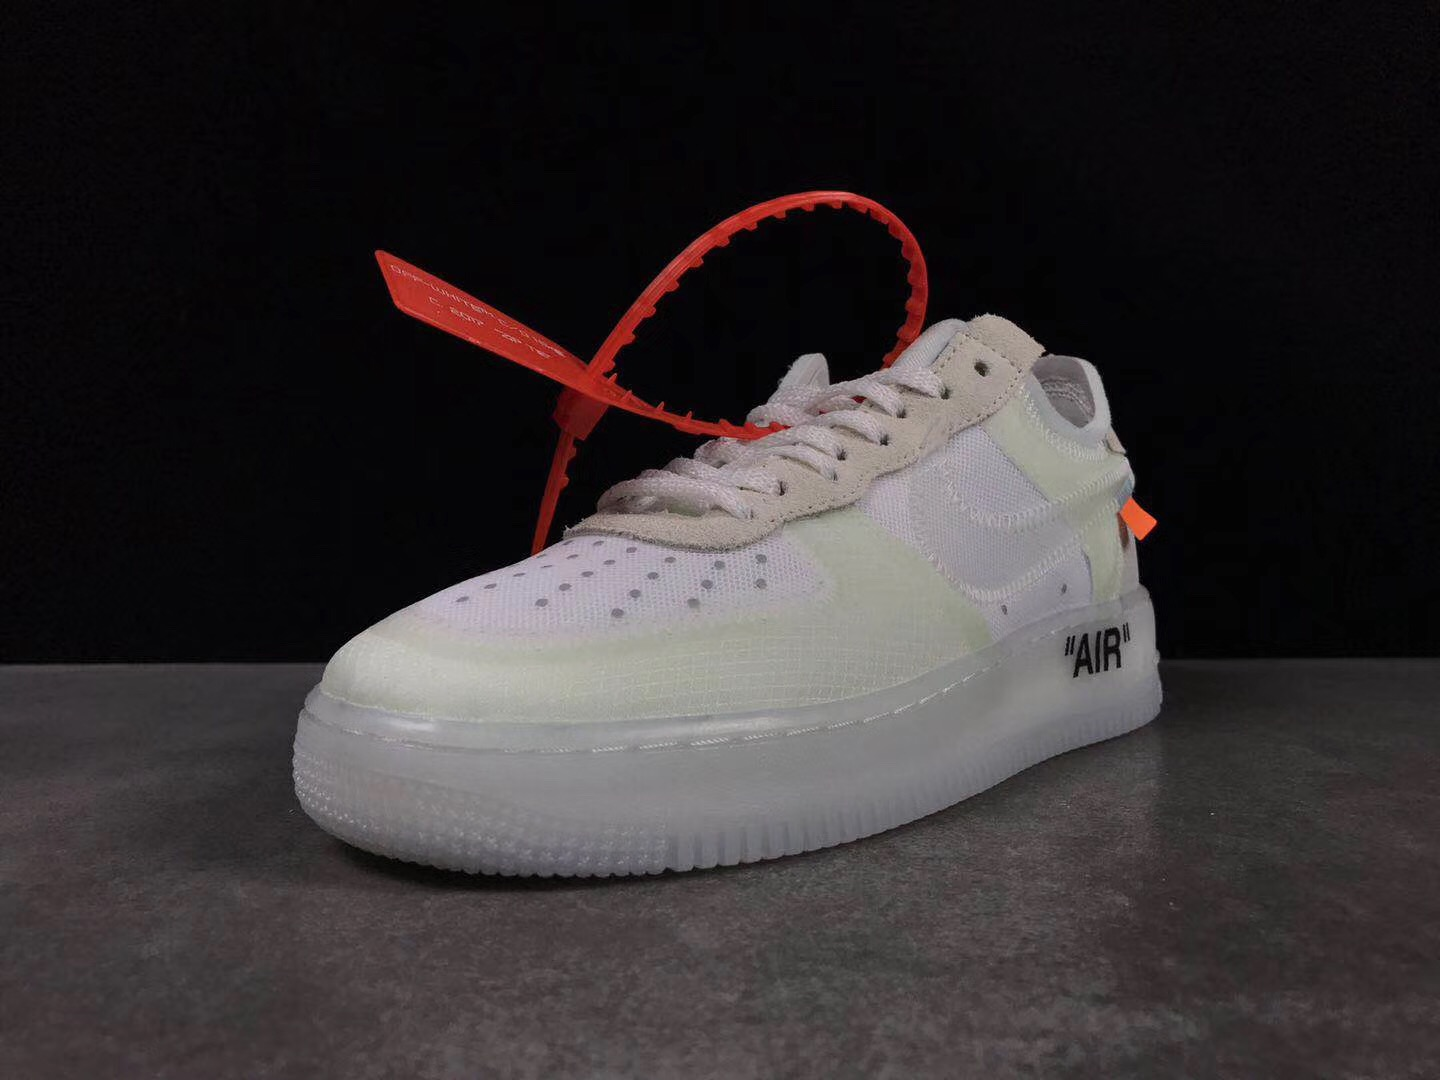 OFF-White x Nike Air Force 1 Low Shoes